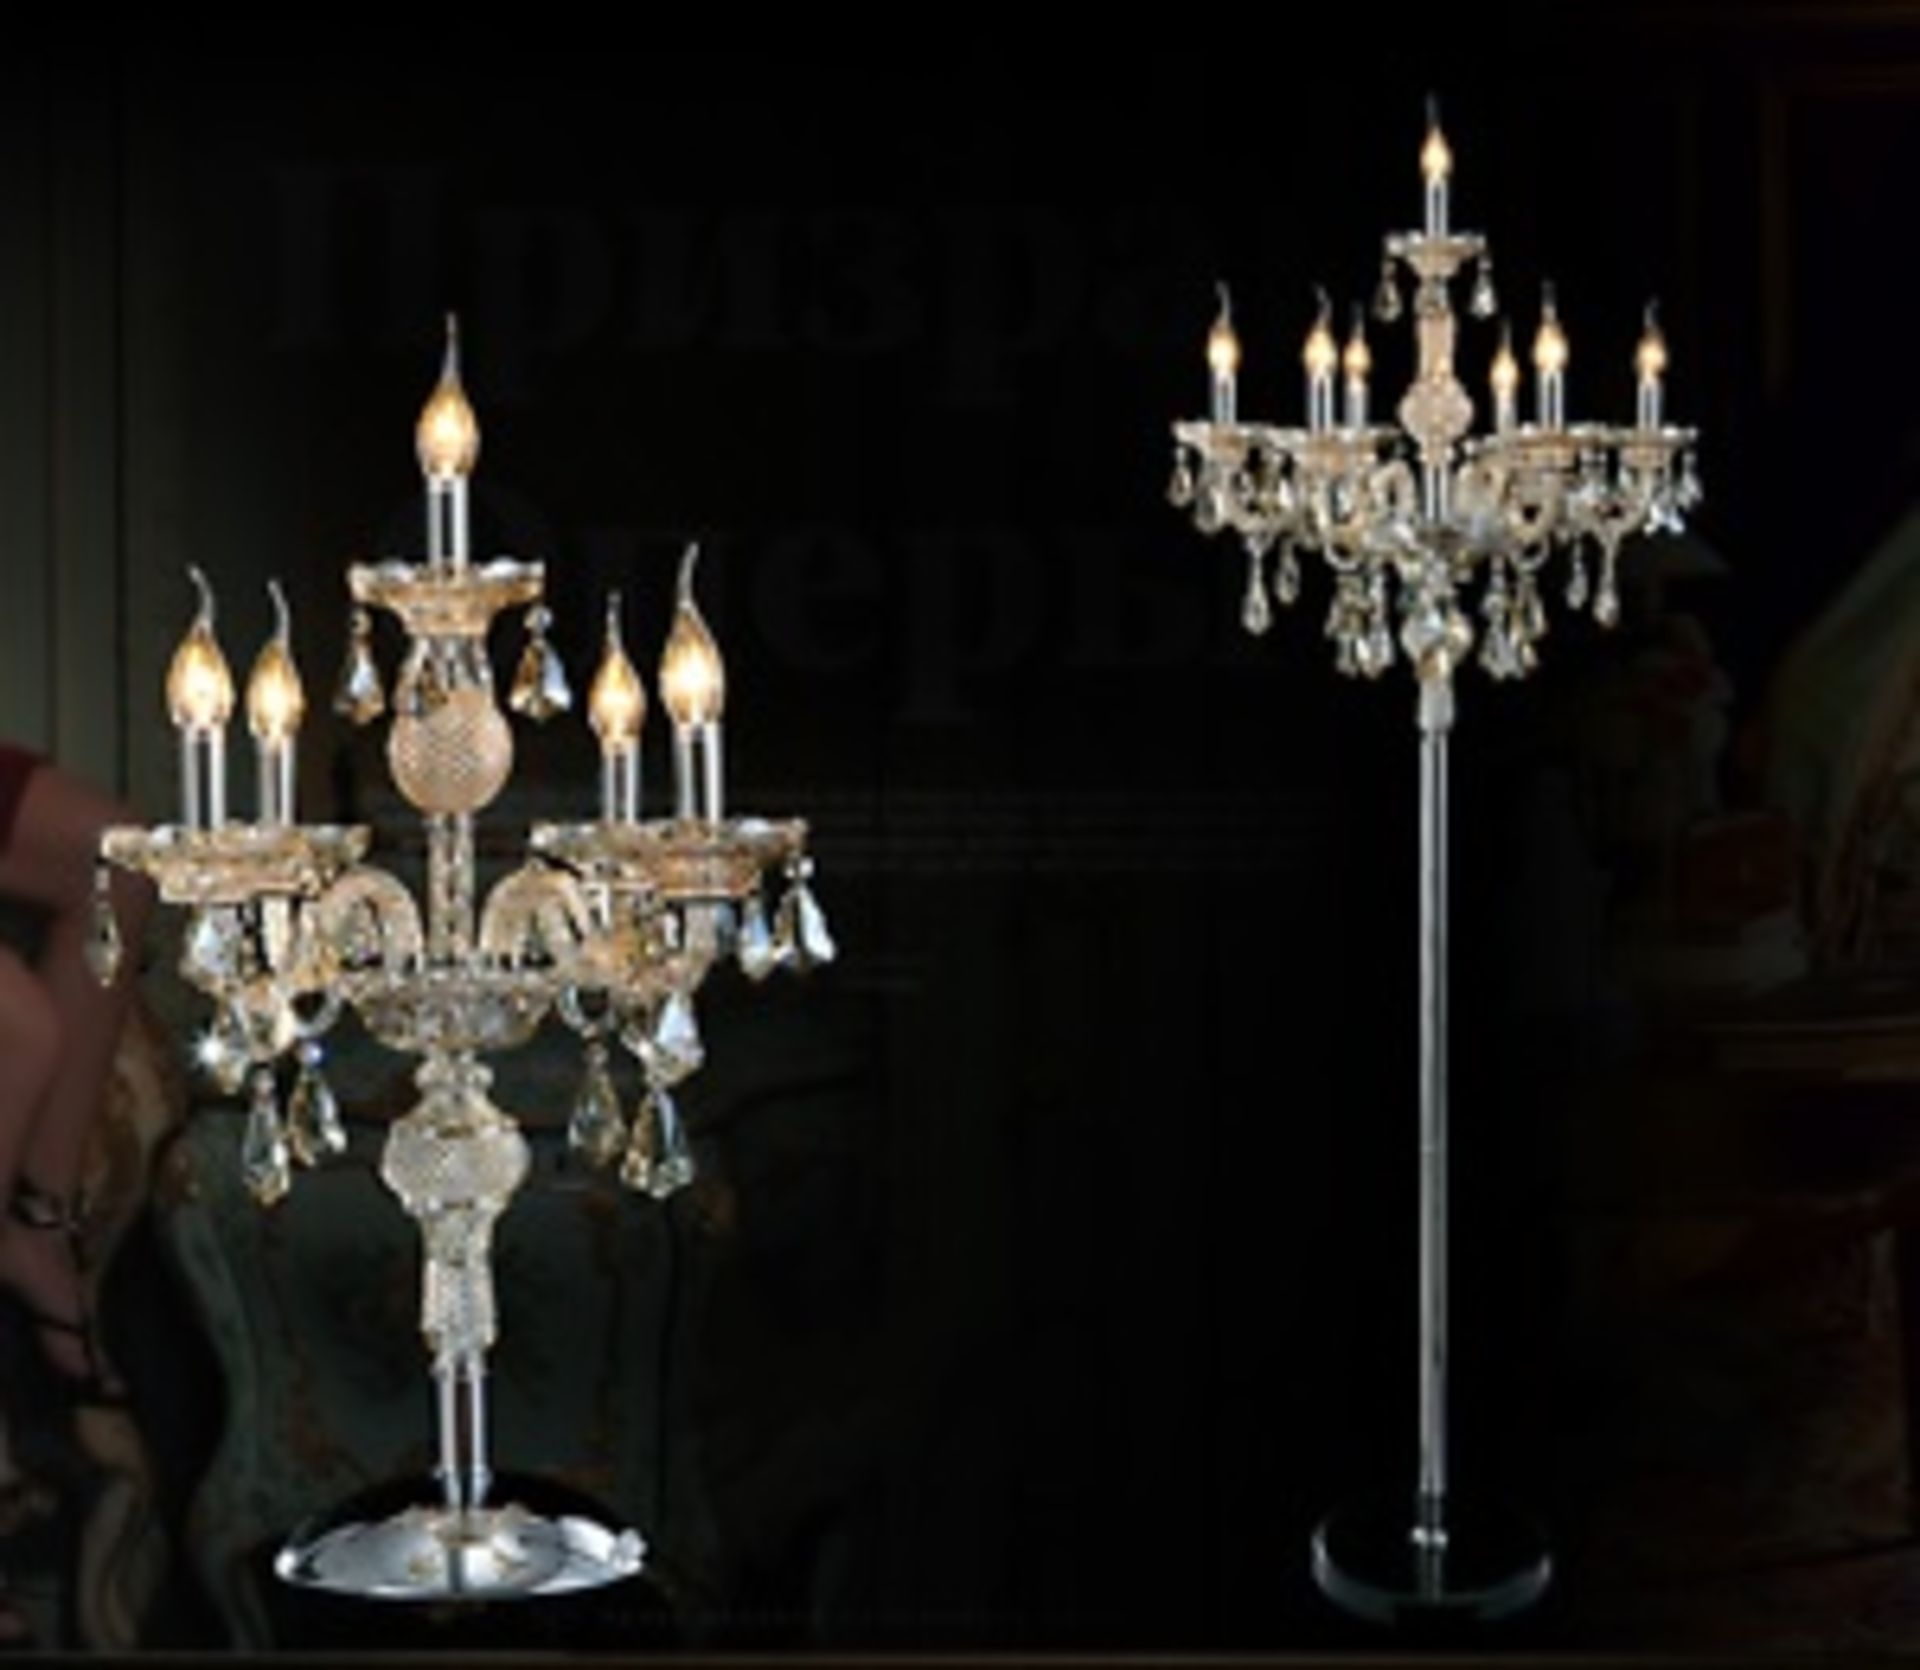 Lot 52 - Crystal Floor Lamp The Crystal Lighting Collection Is Inspired By The Elaborate Designs Of Late